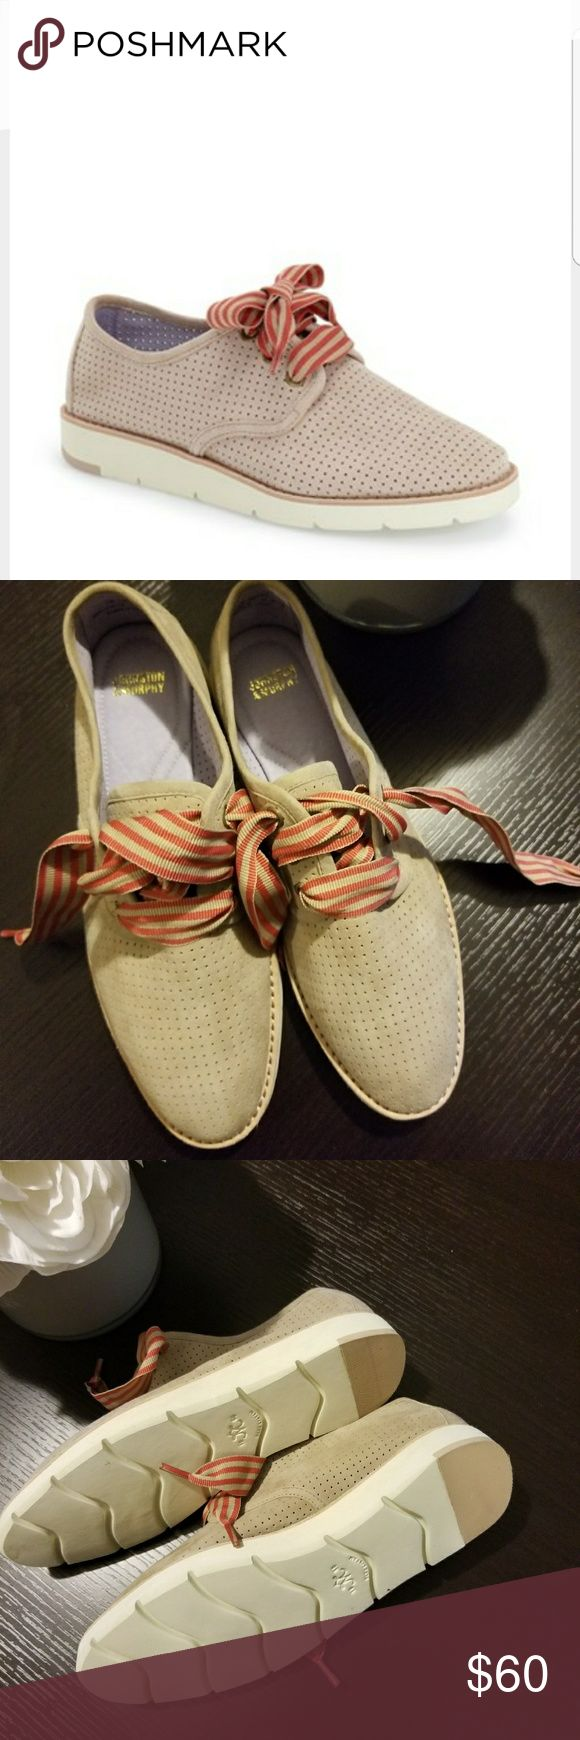 Johnston & Murphy phyllis lace-up Currently sold out in stores and hard to find in this particular style...as you can see these have never been worn but do not come with box..  Feel free to make offers Johnston & Murphy Shoes Flats & Loafers